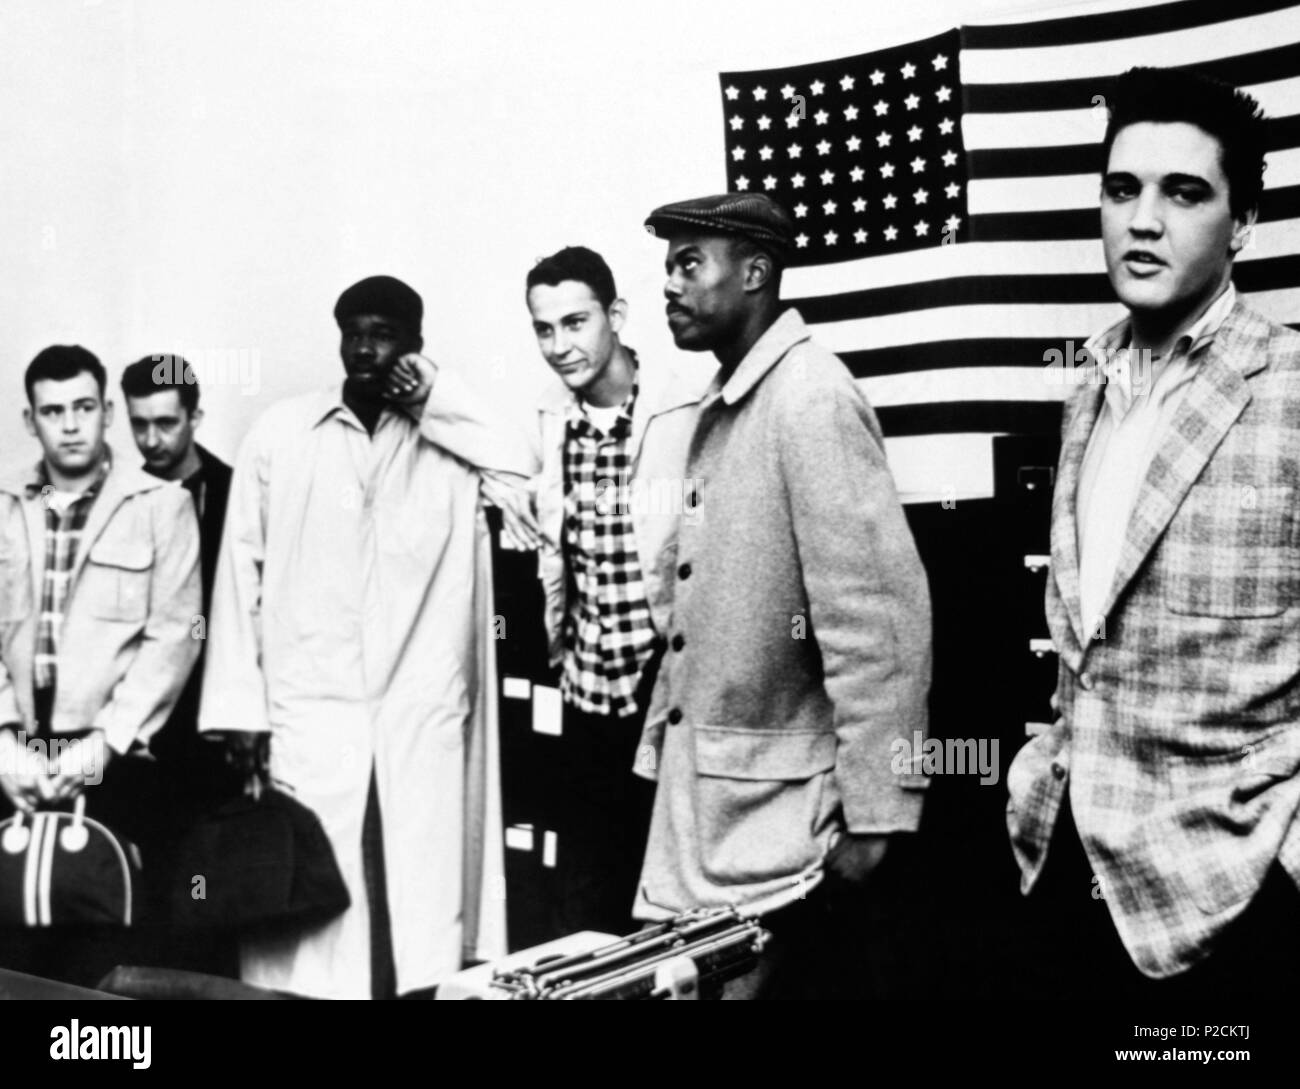 The American singer Elvis Presley in the Army Induction Center at Memphis (Tennessy) in March 1958 Stock Photo - Alamy